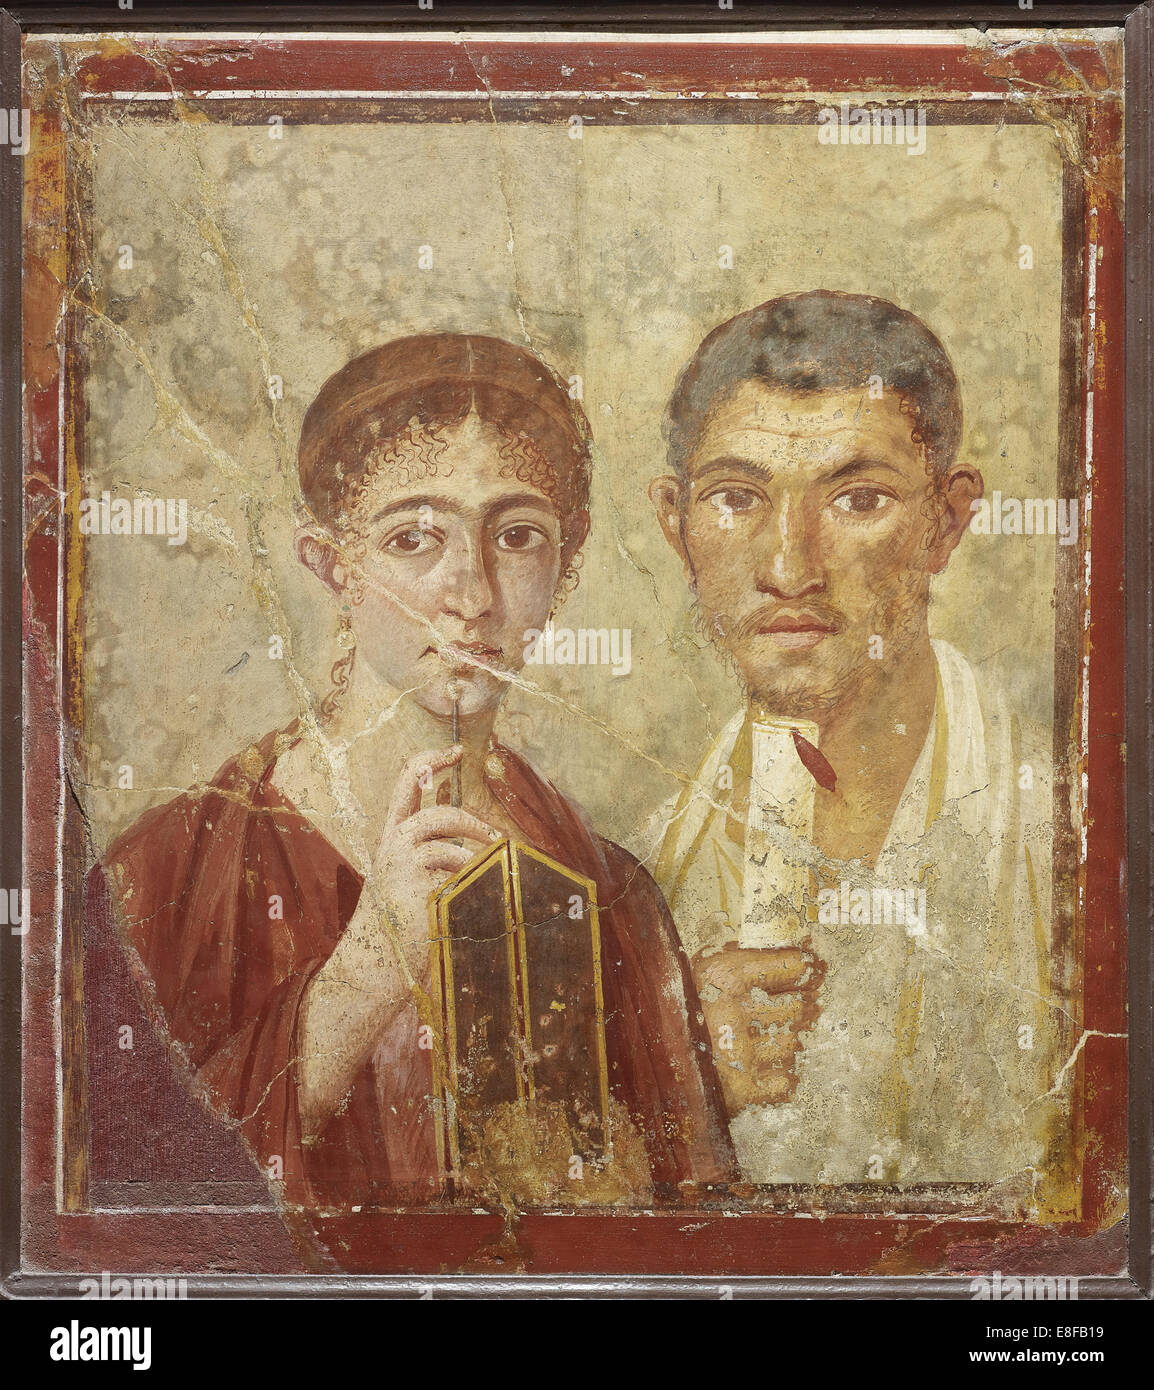 Portrait of the baker Terentius Neo and his wife. Artist: Roman-Pompeian wall painting - Stock Image